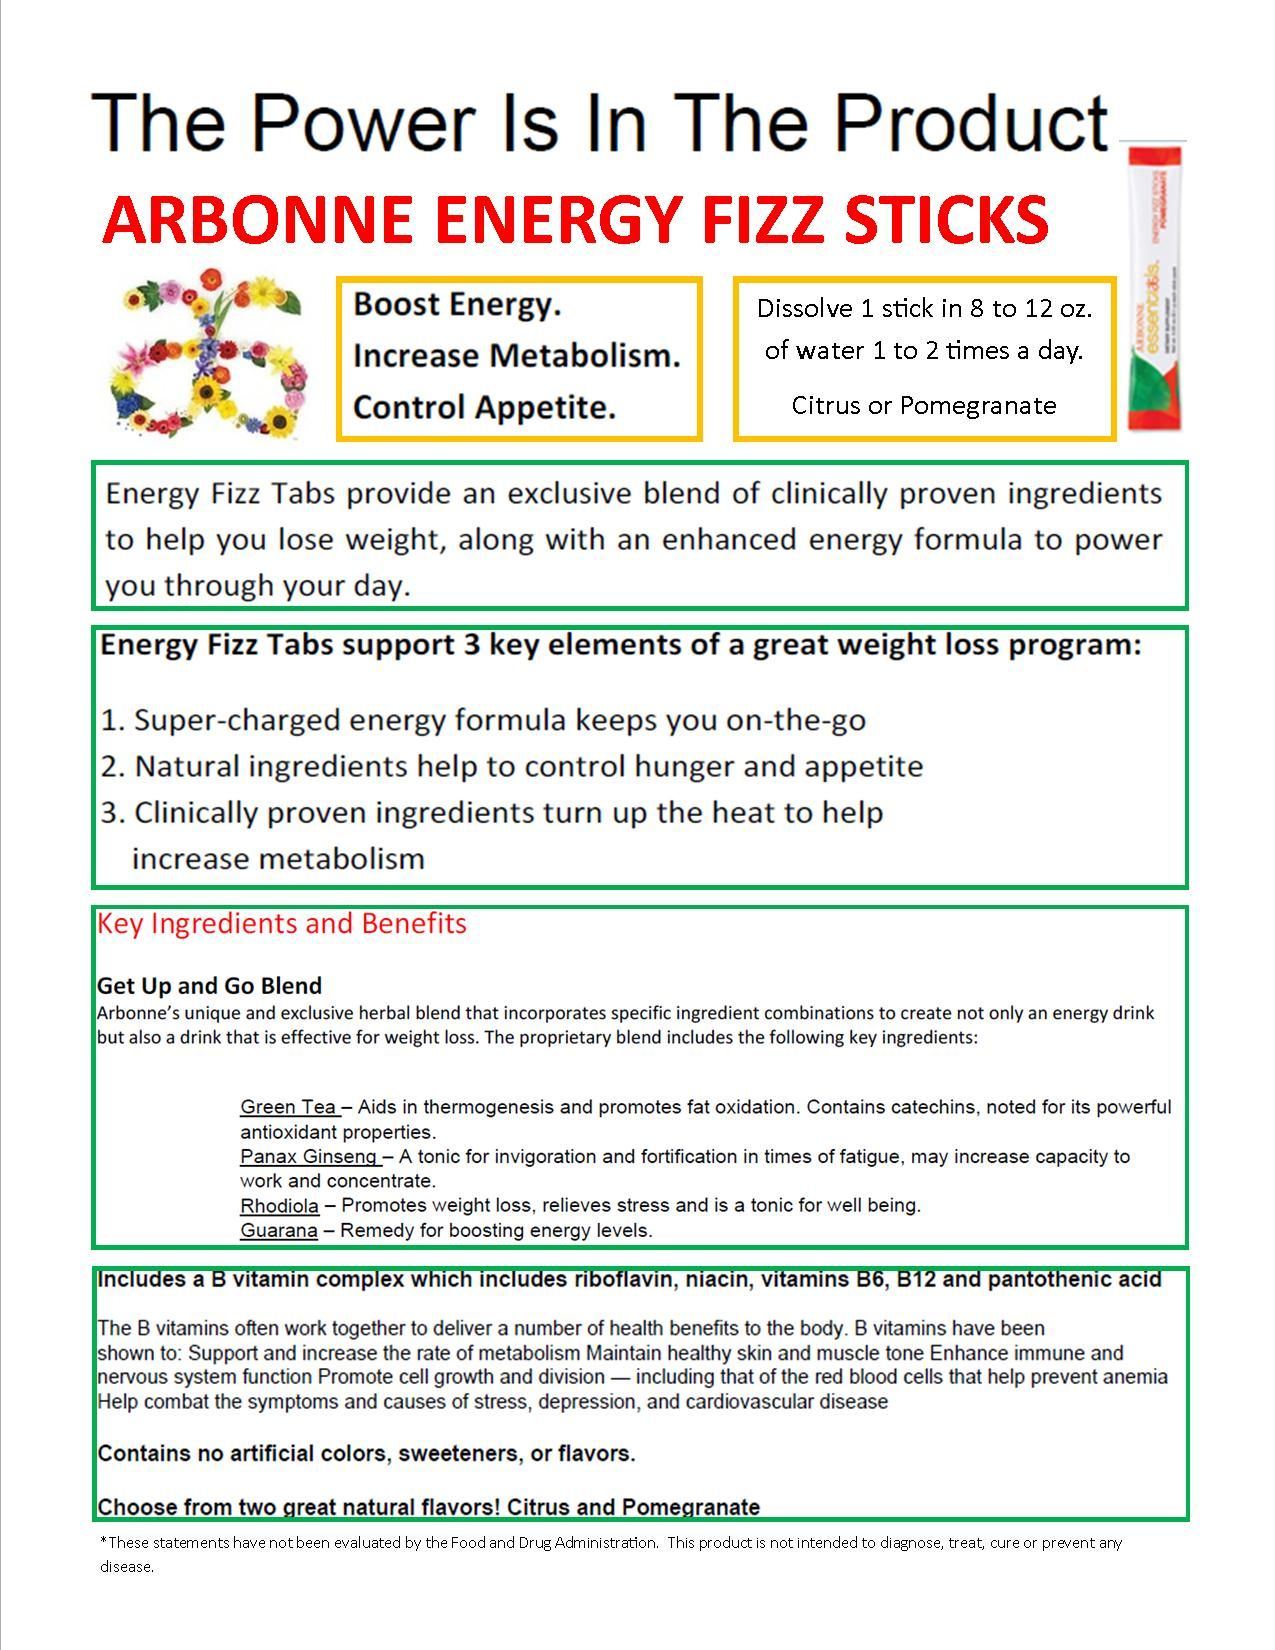 The Power Of Arbonne Energy Fizz Stick Boost Metabolism